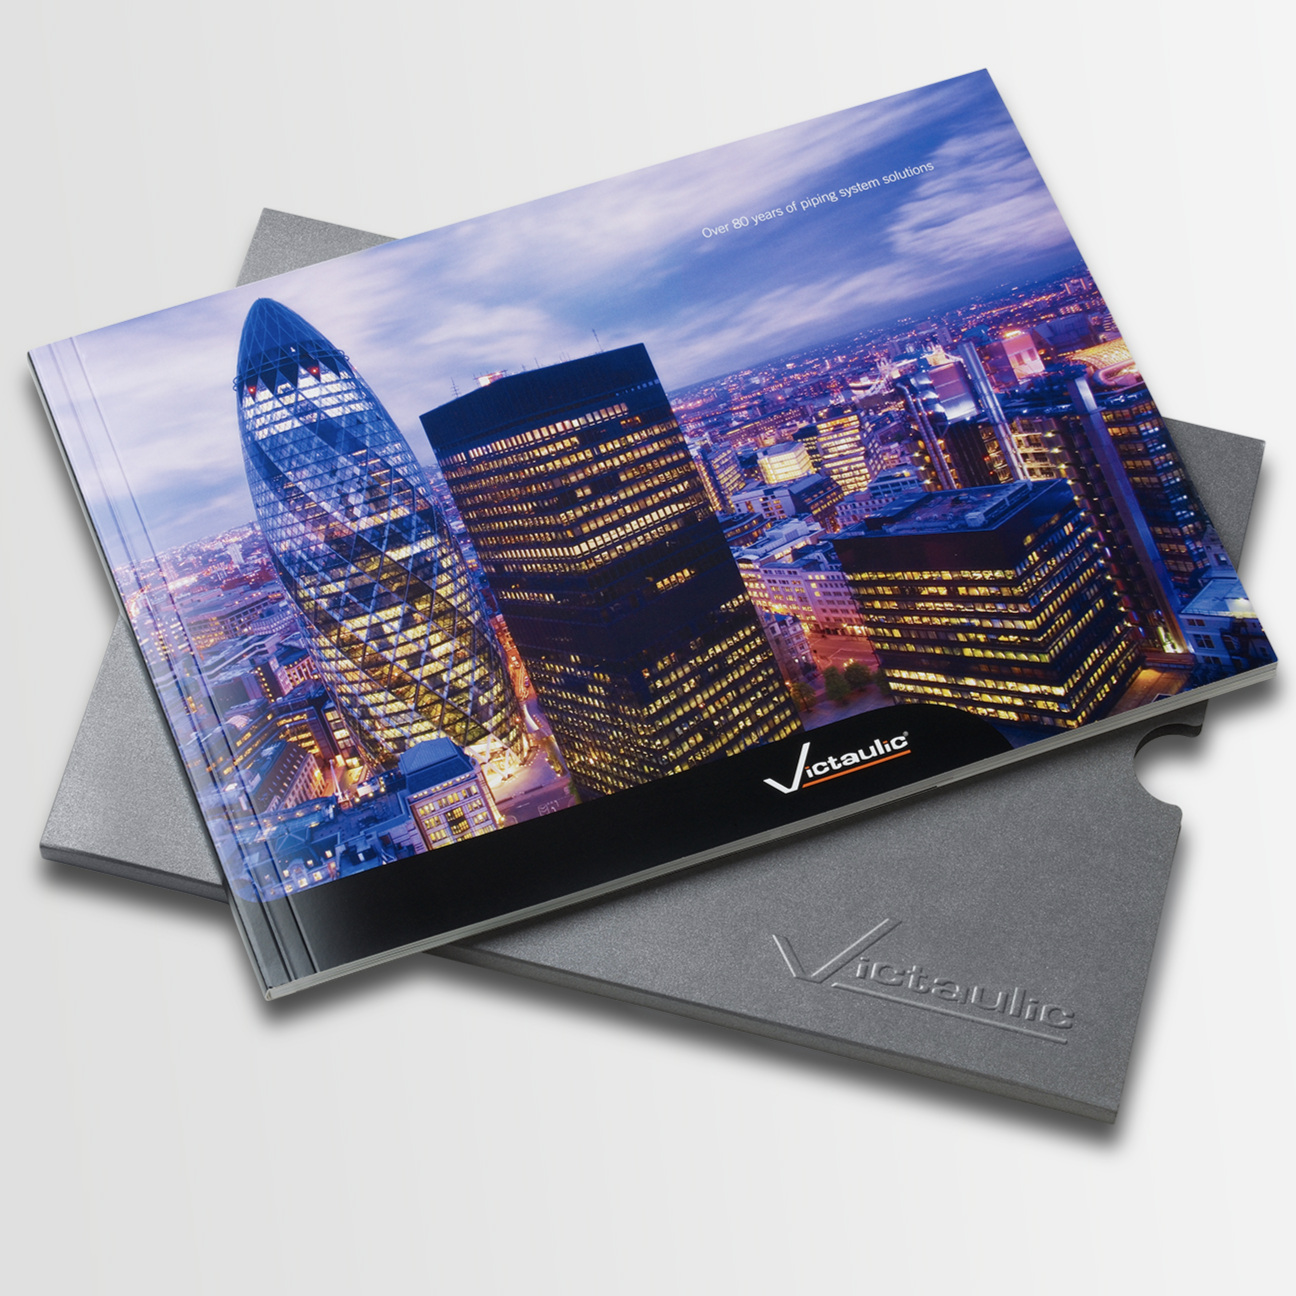 Victaulic | Corporate Capabilities Brochure